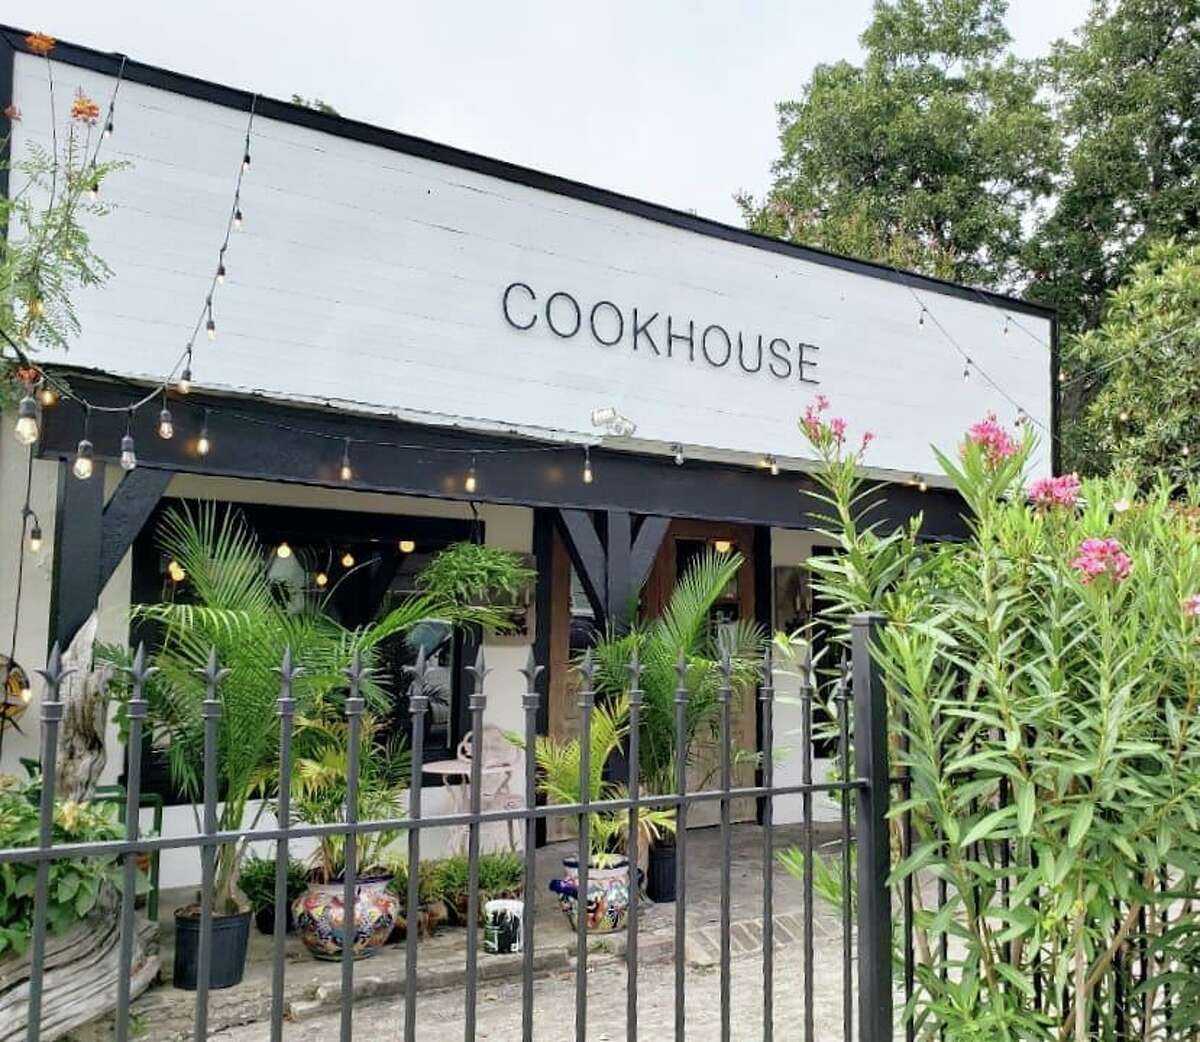 Cookhouse Restaurant, opened by chef Pieter Sypesteyn in 2014, is closing Dec. 31.